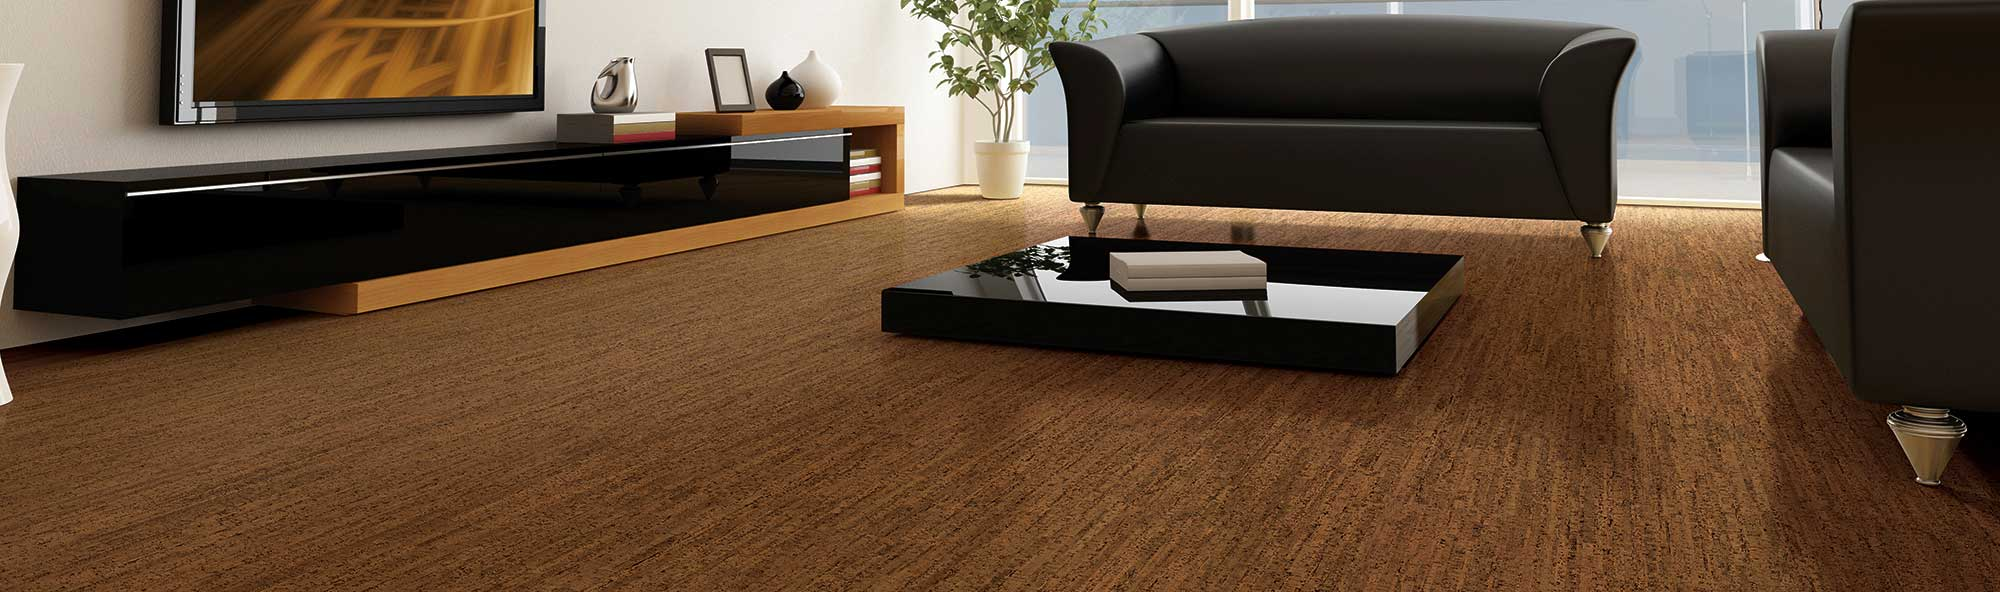 Waynes color centre natural cork flooring coos bay natural cork flooring coos bay dailygadgetfo Image collections